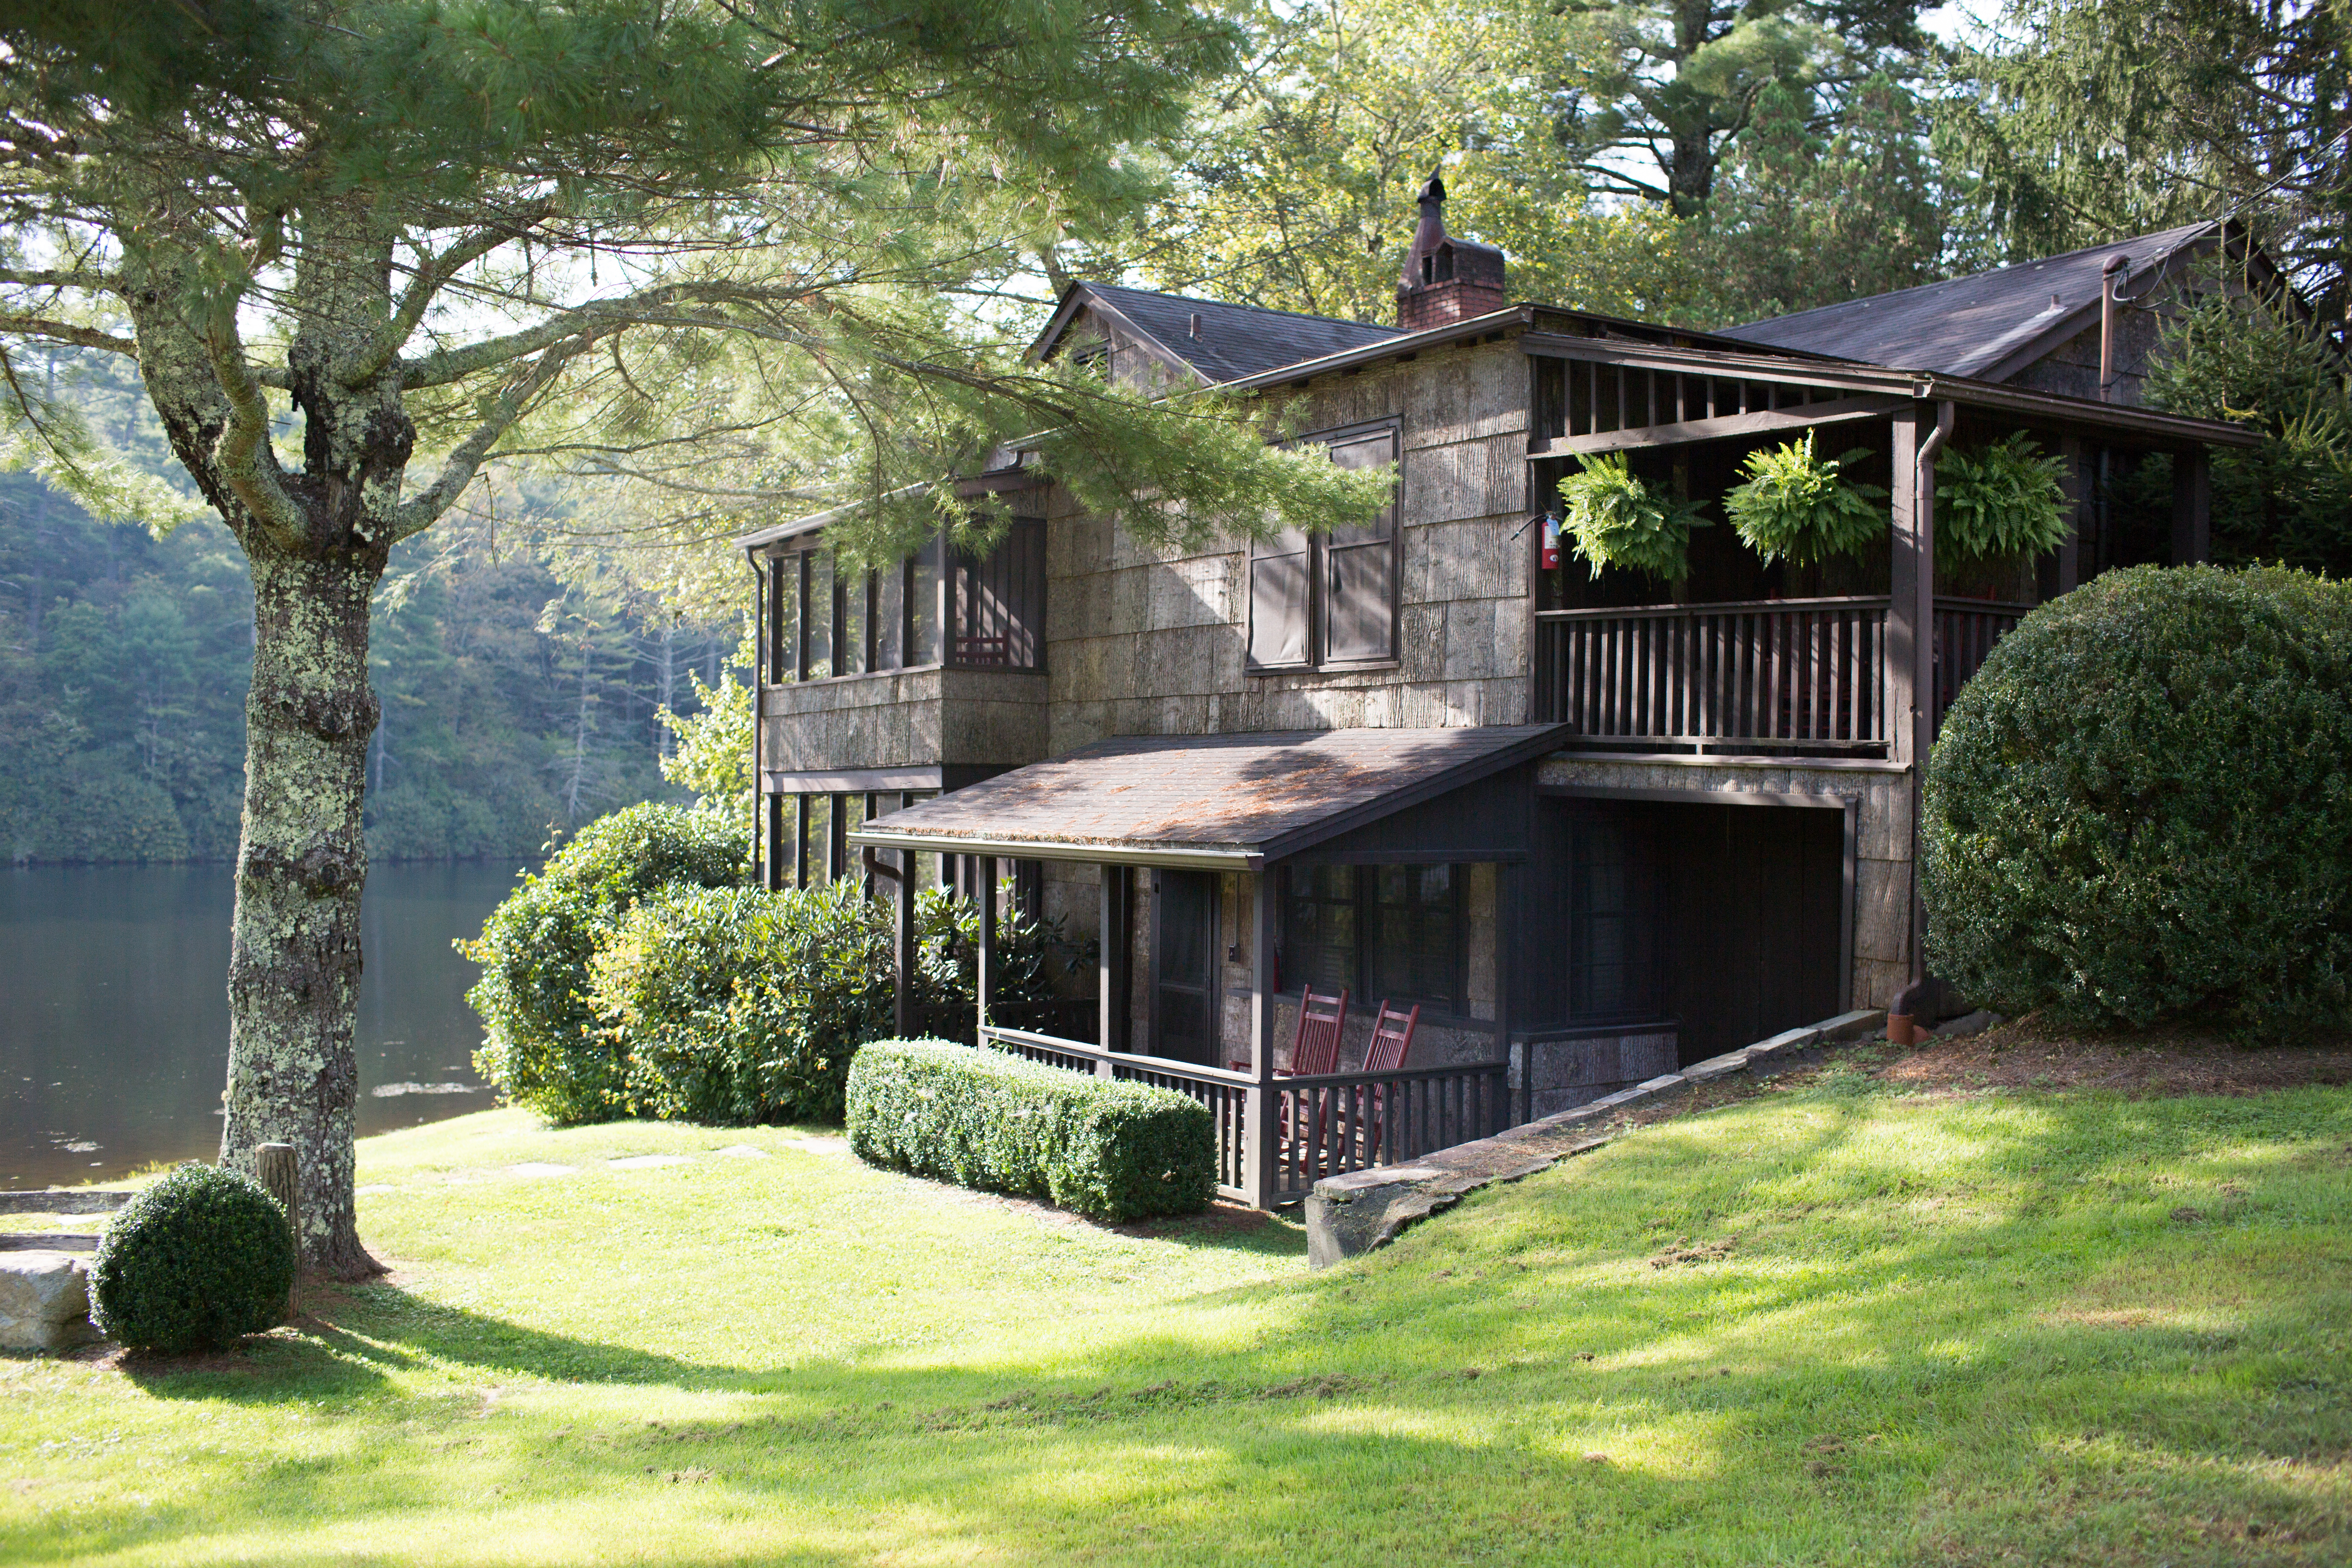 ridgetop views image experience places property lincoln stay to epic with a in pet ha city oceanfront home oregon friendly